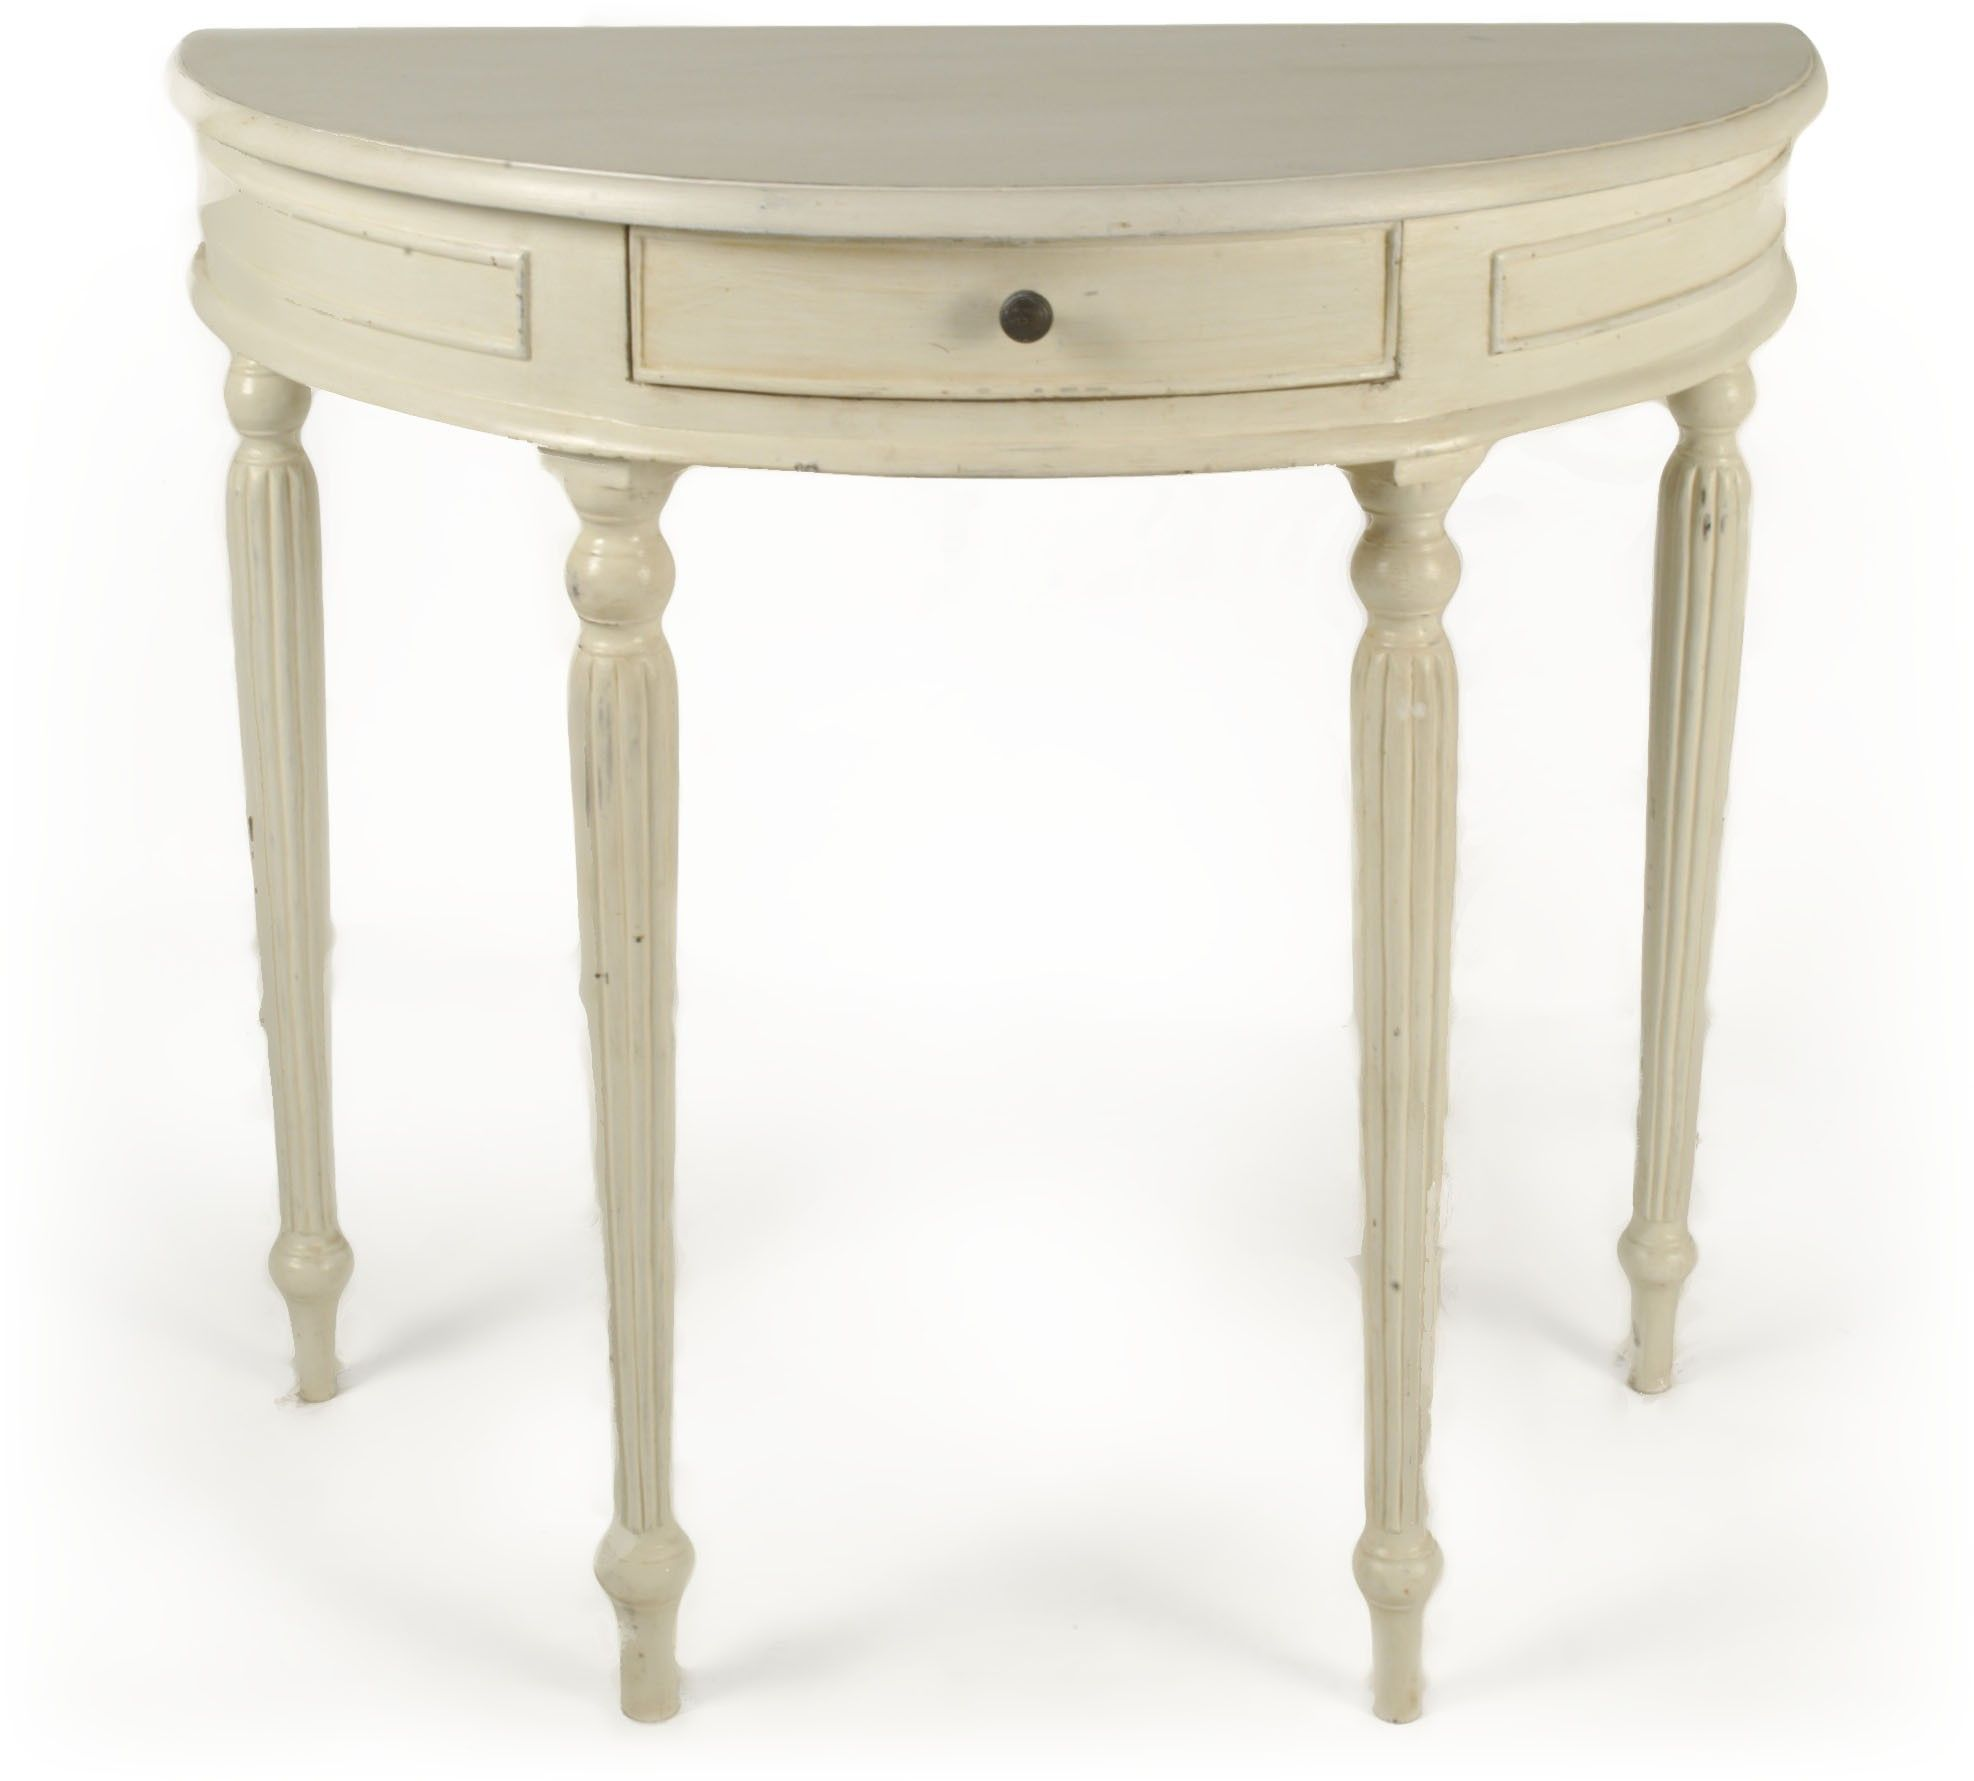 Small Half Moon Table For Hall half moon console table | french traditional | pinterest | half